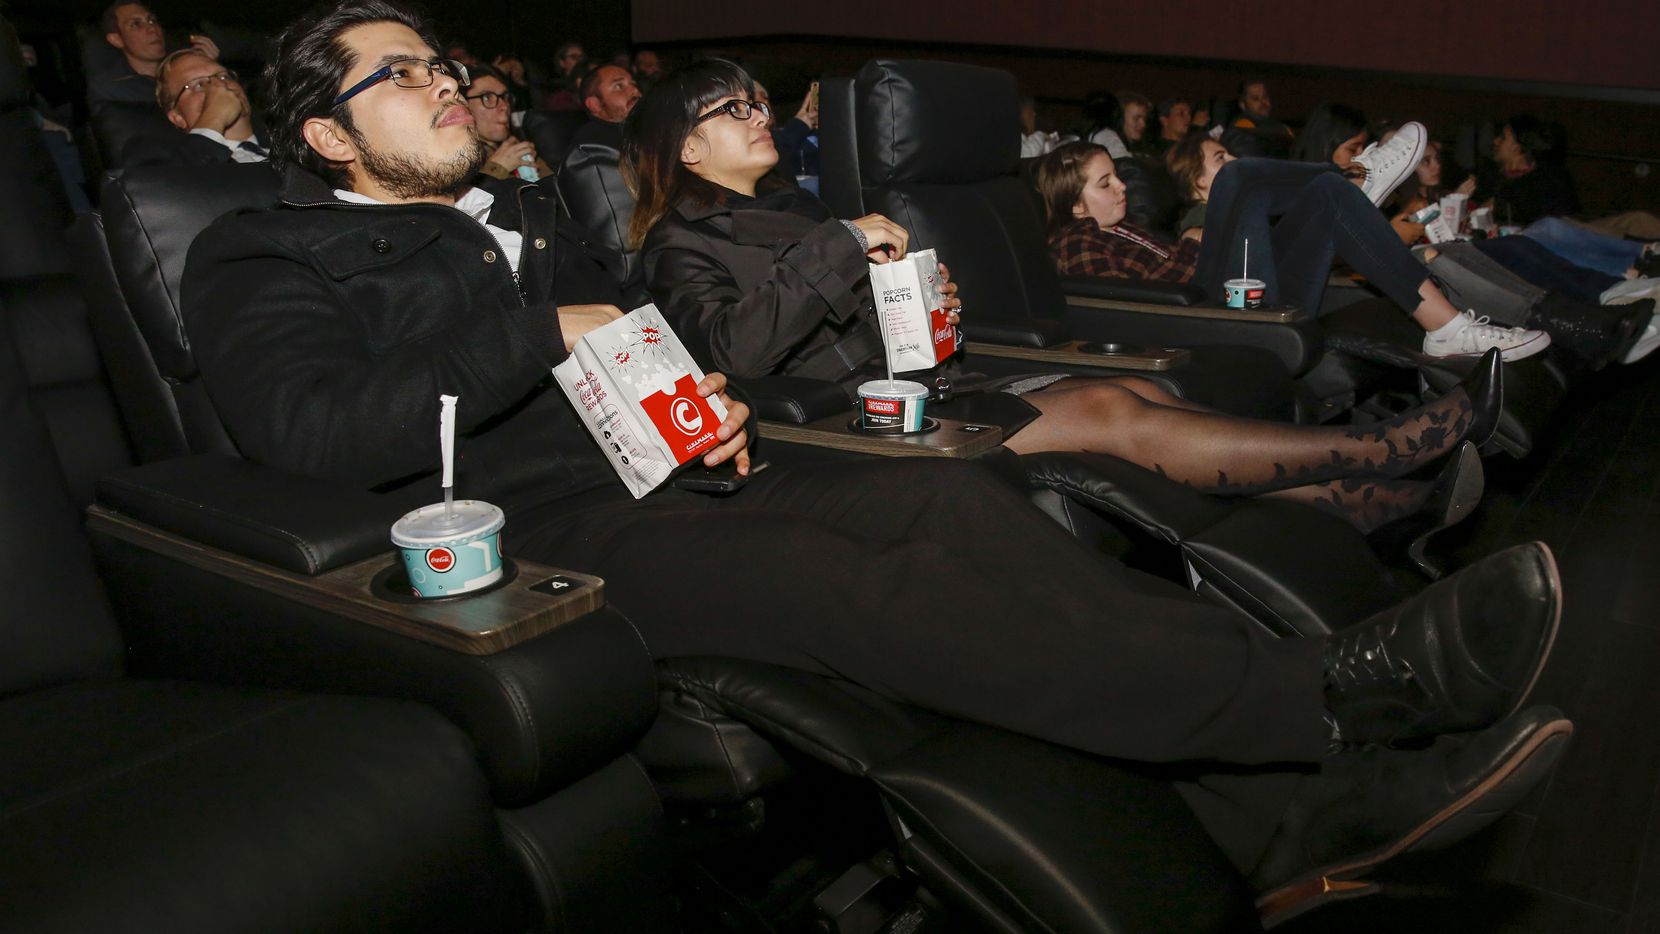 Gustavo Alvarado and Gemma Ortega recline in their seats at a party before the opening of the remodeled Cinemark movie theater in central Plano. For the first time in 25 years, this theater has recliners.